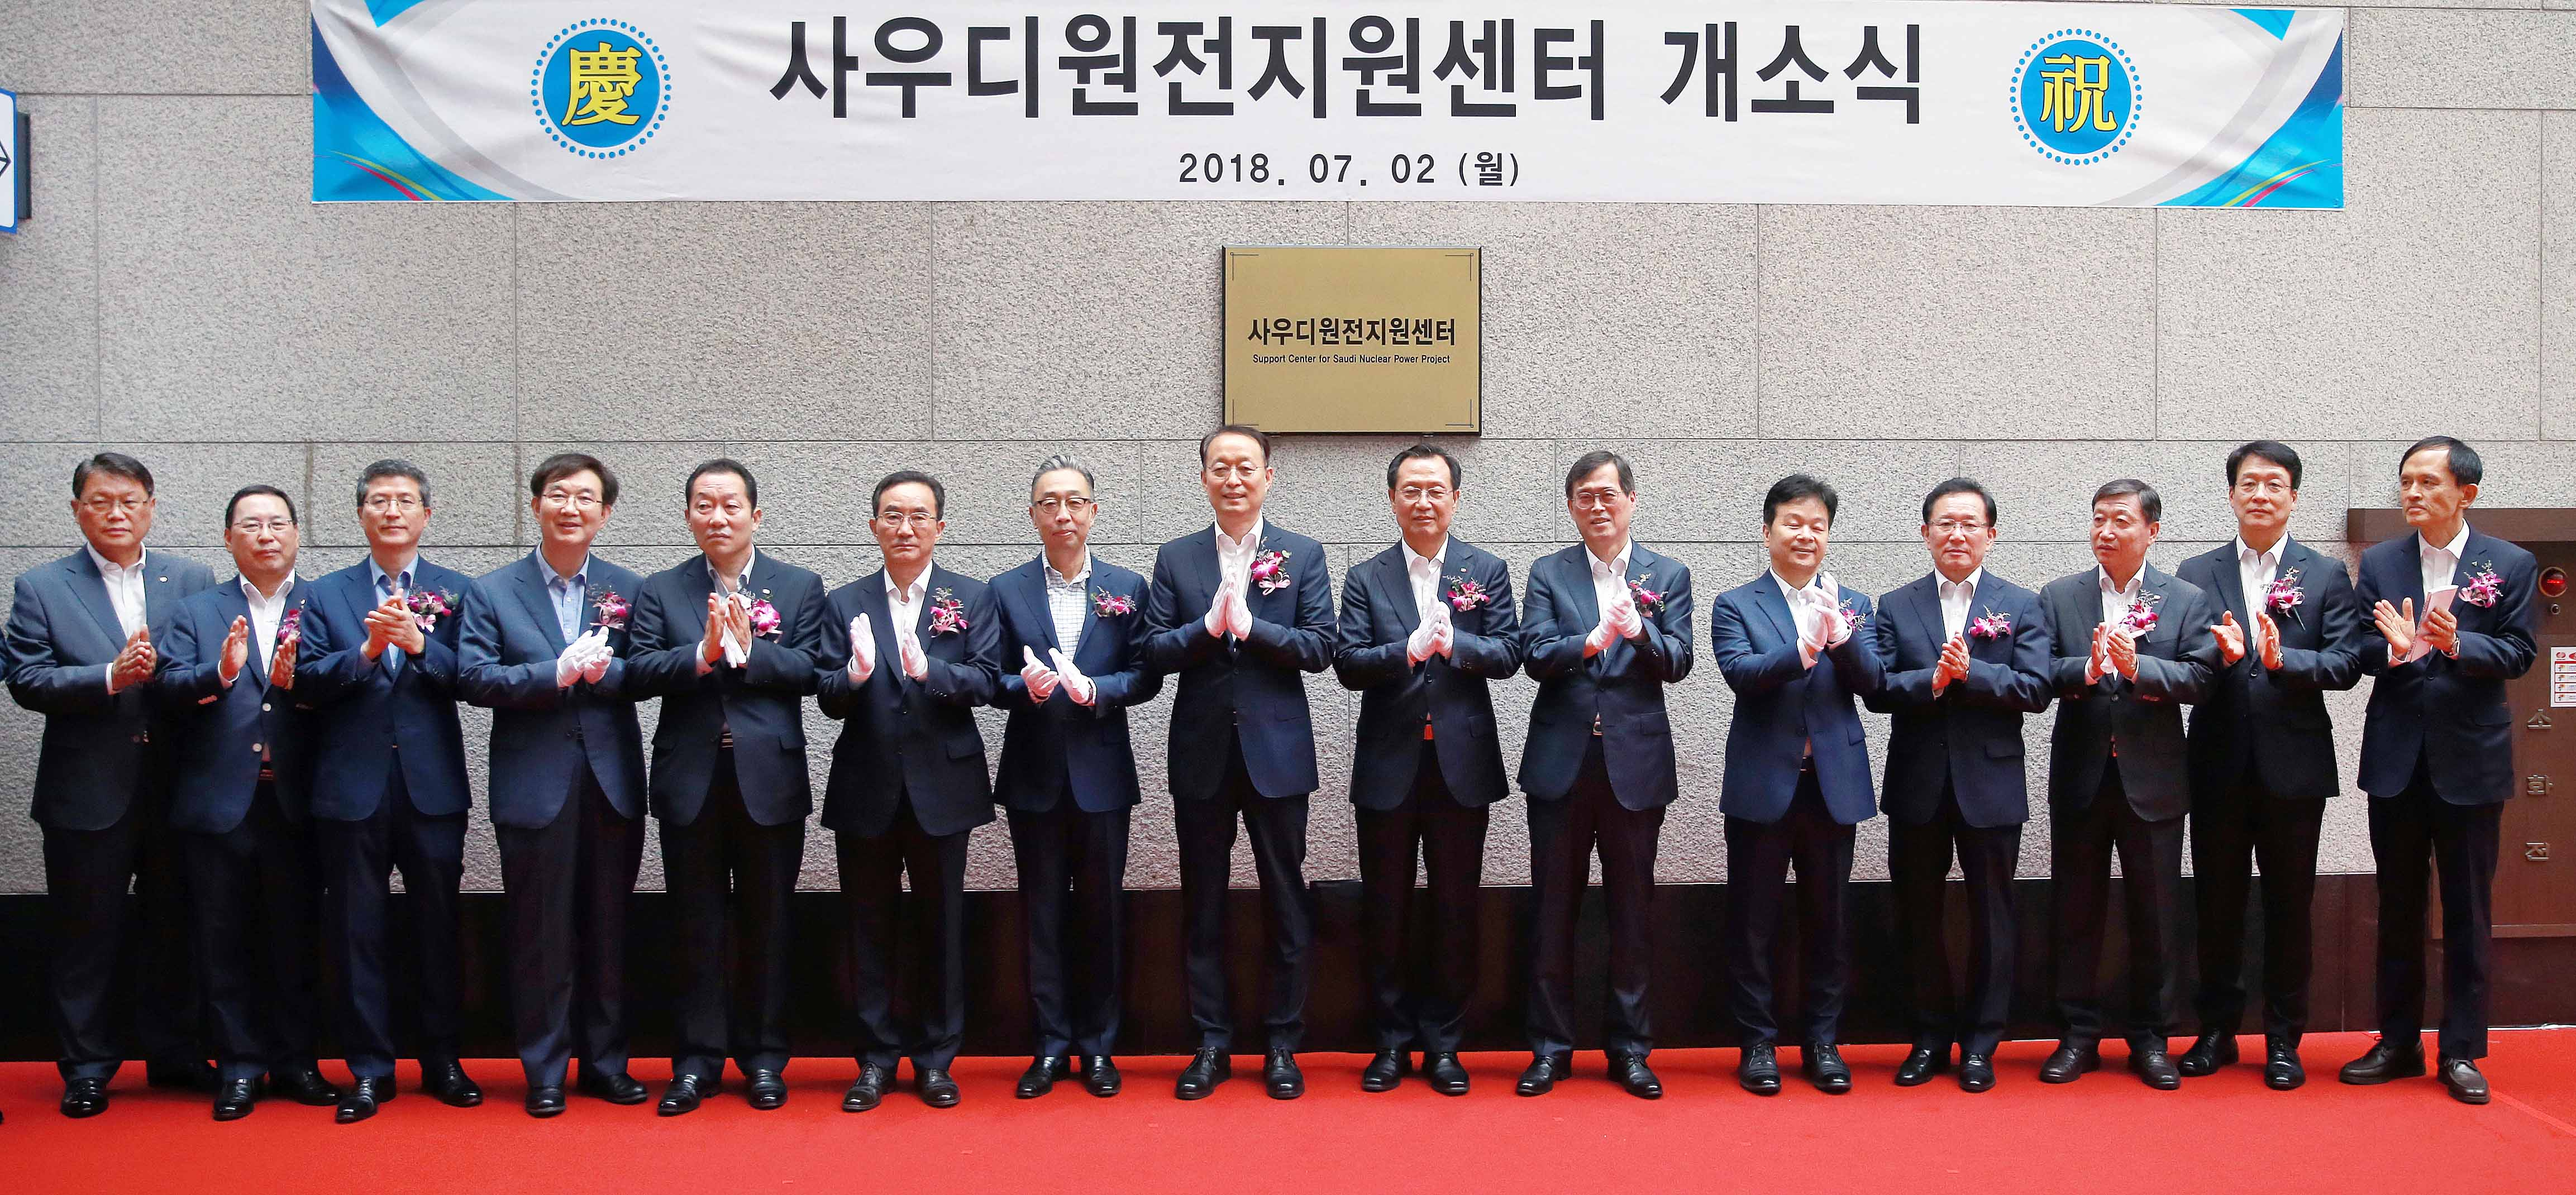 Minister Paik attends launch ceremony for Saudi nuclear project support center